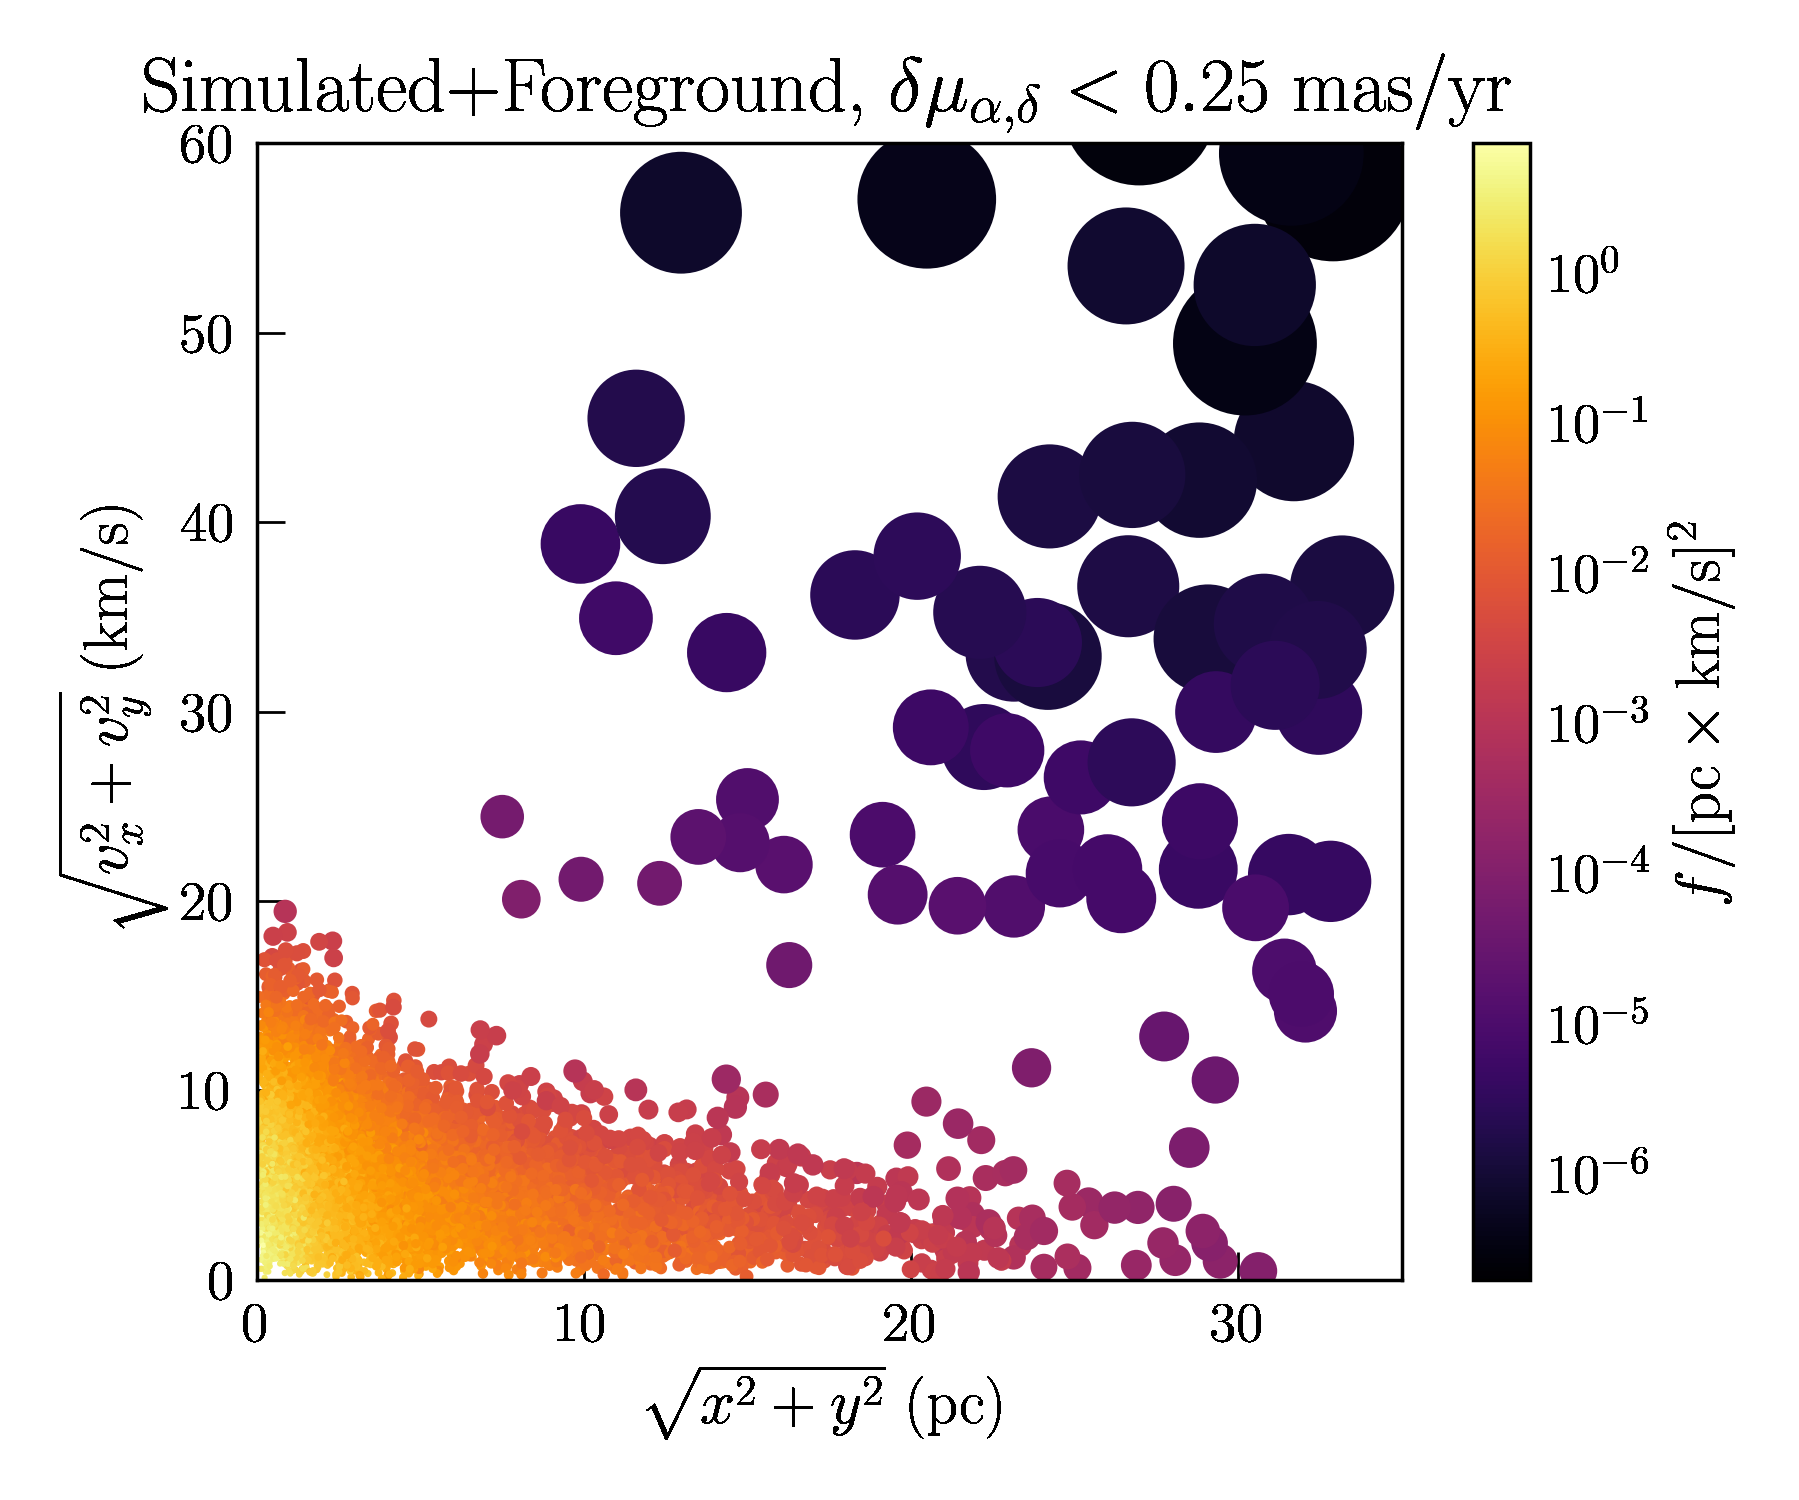 Simulated stars in a M4-like globular cluster including measurement errors and foreground stars, after a cut on stars with large errors is applied. Color and size of each star represent the relative phase space-density (larger points are lower density).